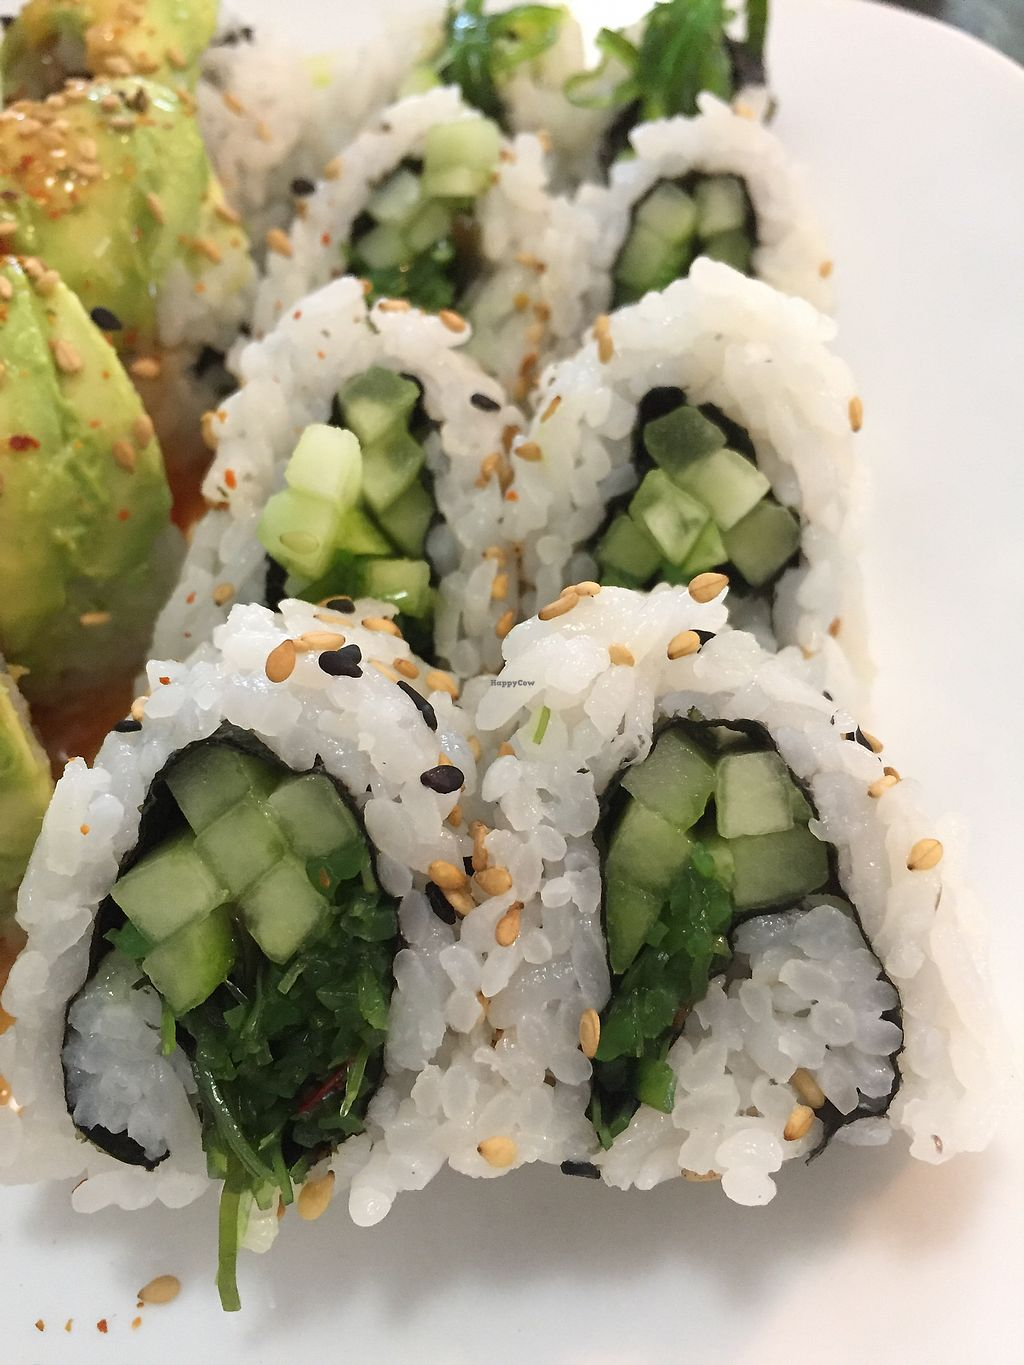 """Photo of Momiji  by <a href=""""/members/profile/happycowgirl"""">happycowgirl</a> <br/>Kaisou Vegetable Roll <br/> December 27, 2017  - <a href='/contact/abuse/image/70314/339744'>Report</a>"""